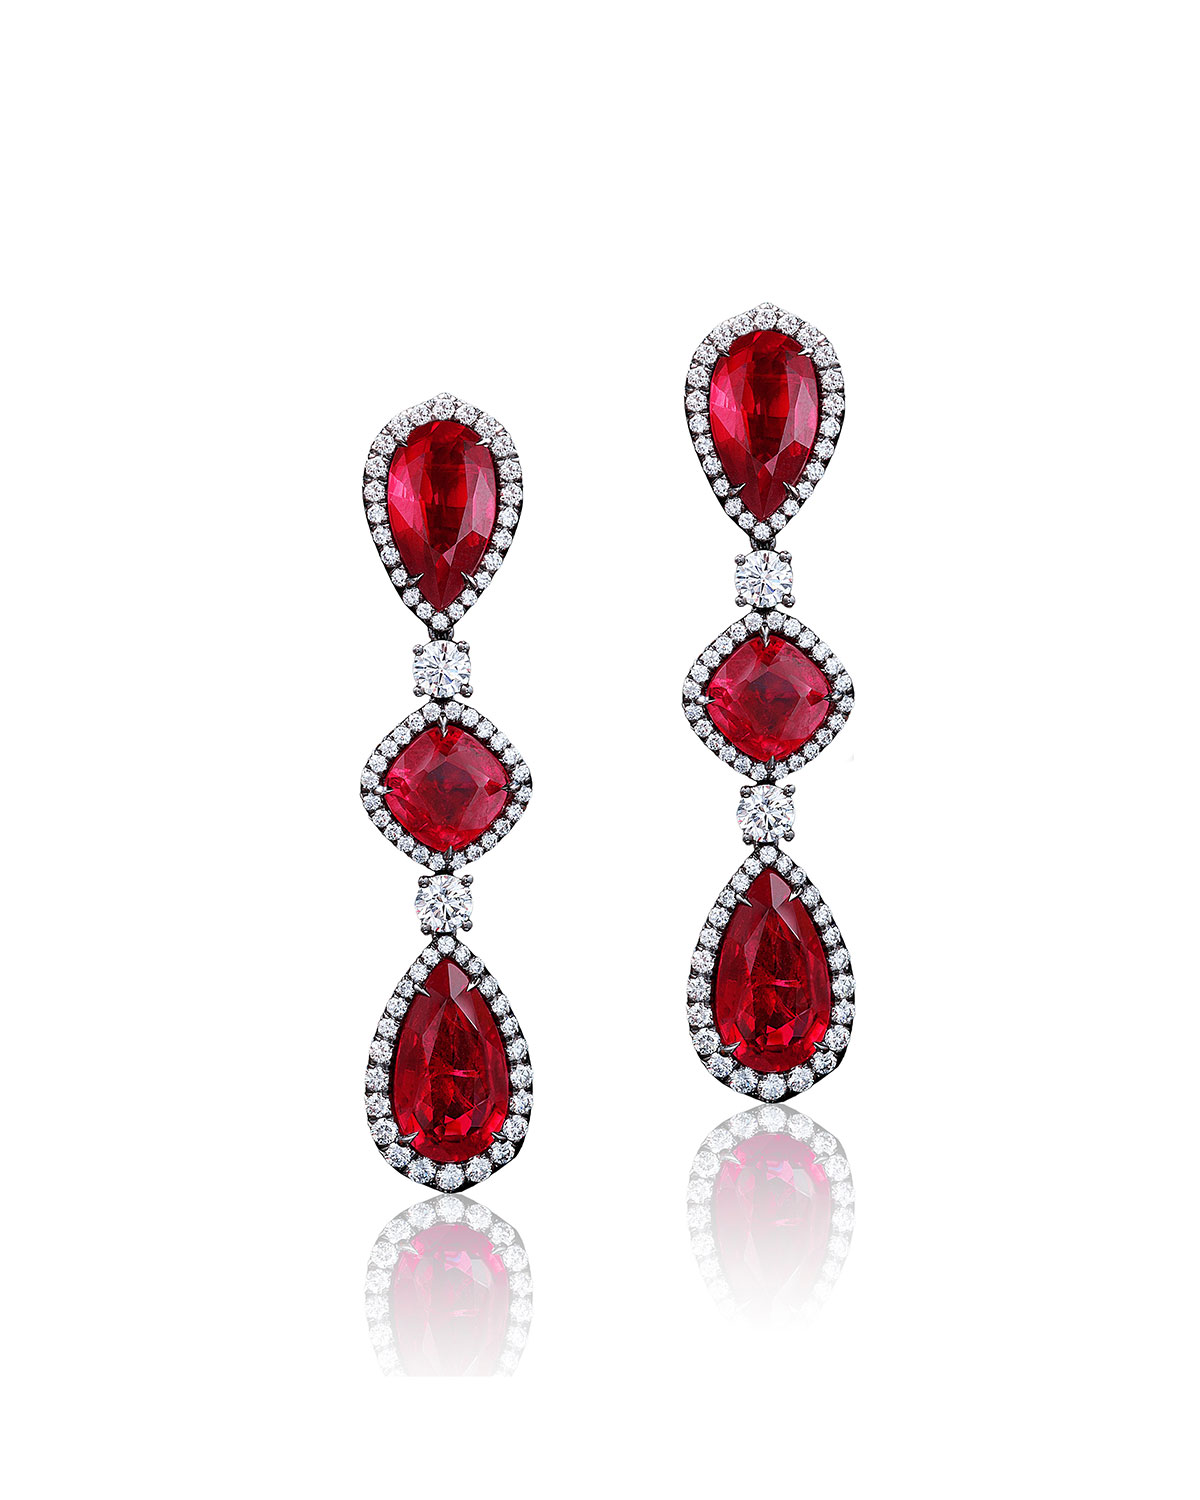 18k Black Gold Mozambique Ruby and Diamond Earrings